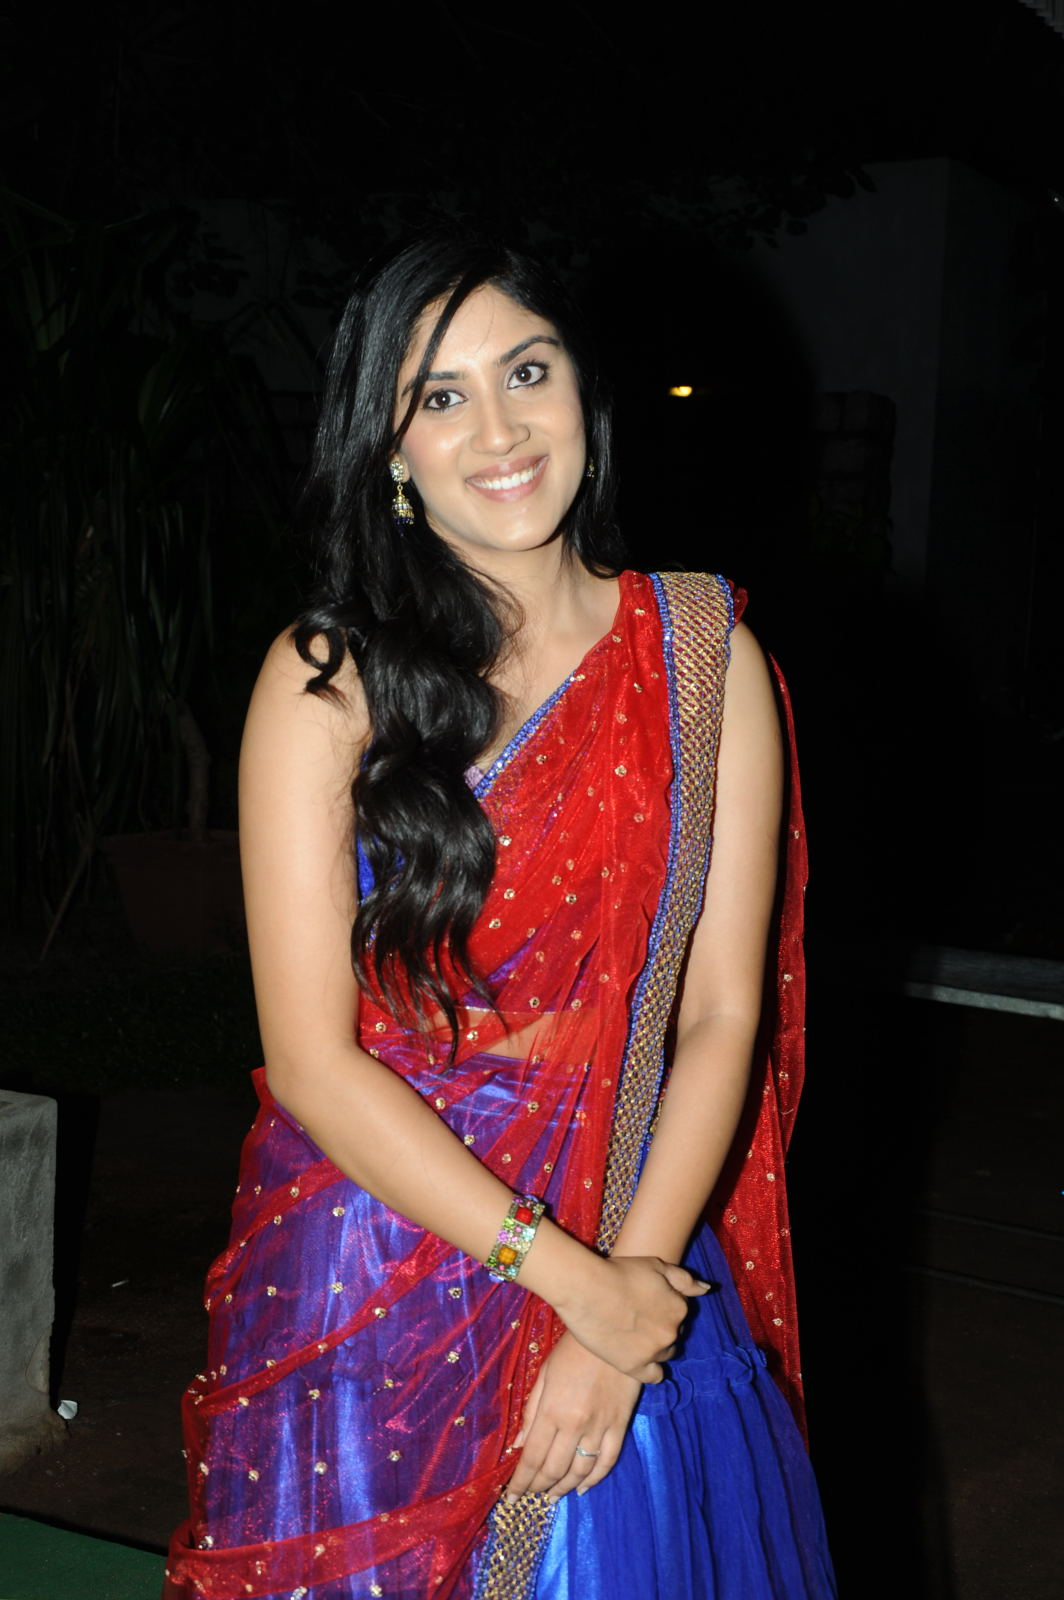 Cute Dhanya balakrishnan photos in traditional dress at second hand movie audio launch